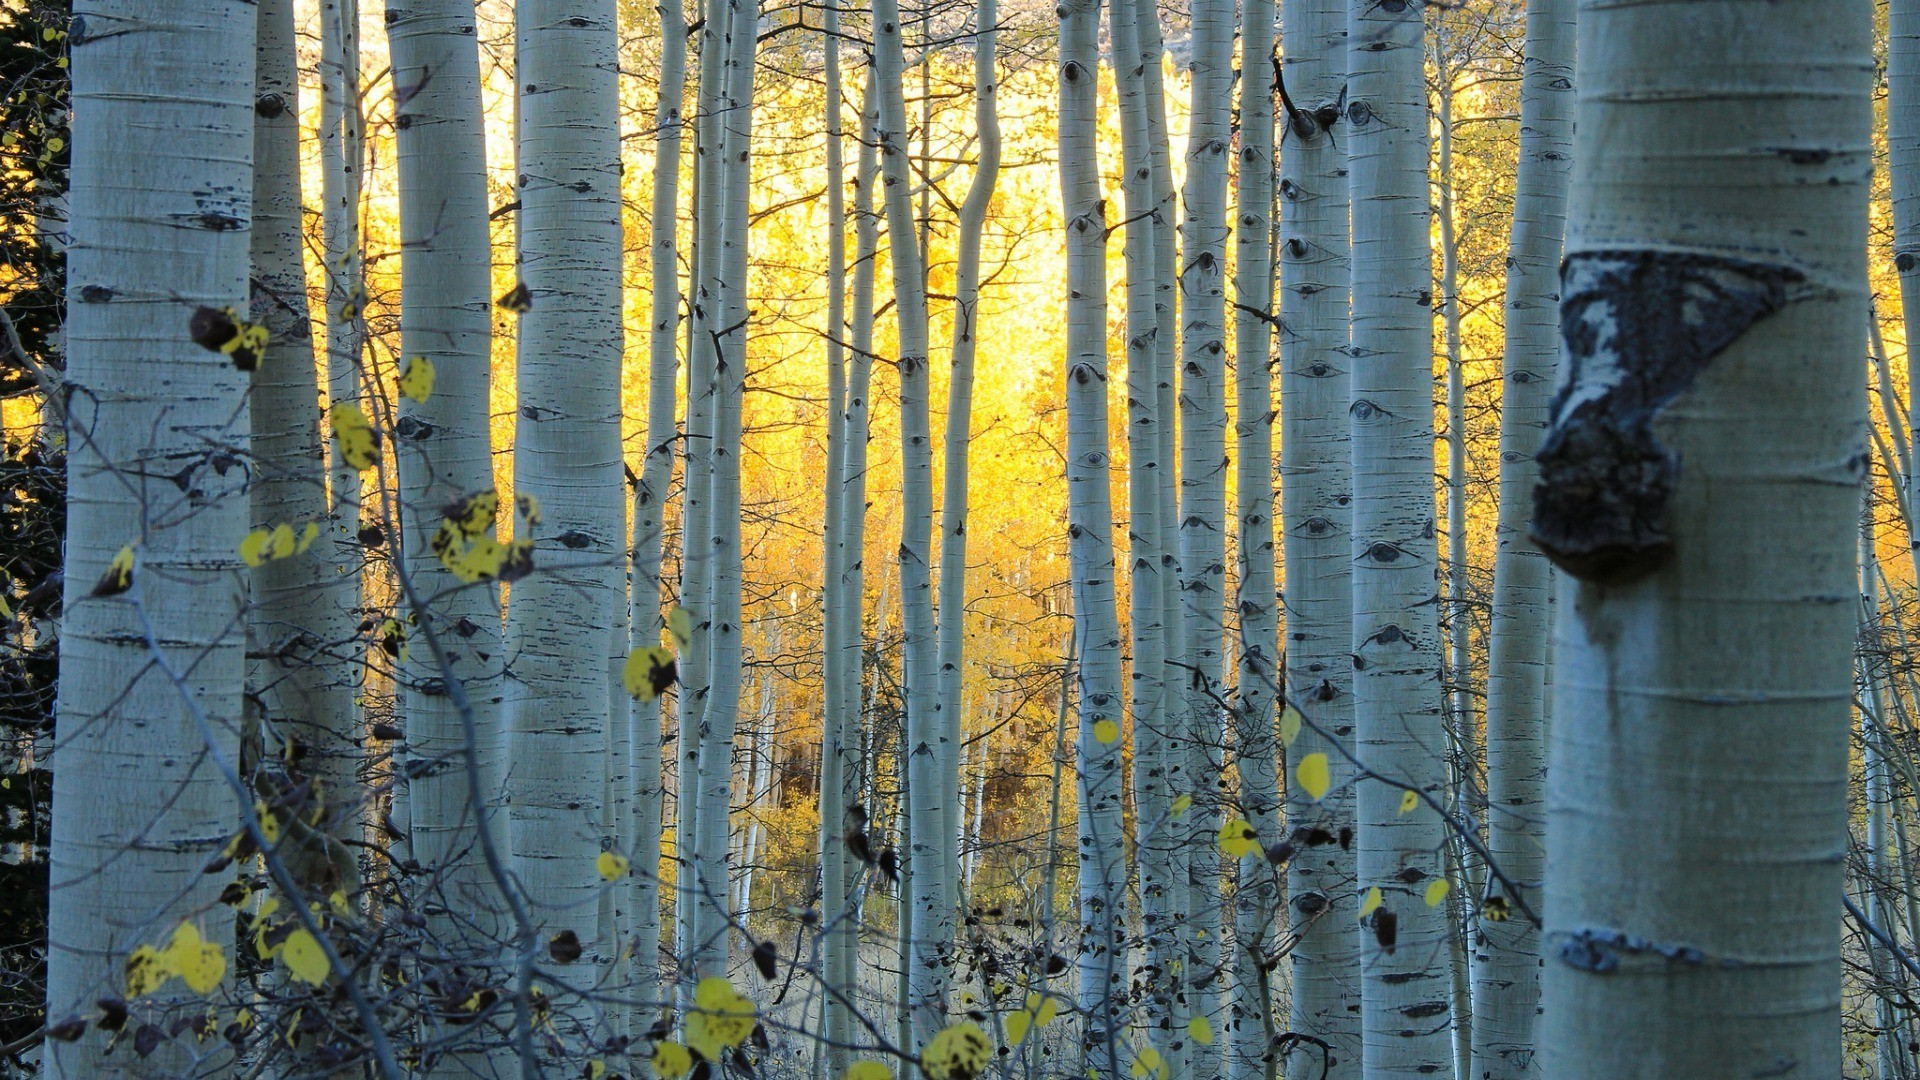 Res: 1920x1080, nature, Trees, Forest, Sun, Sunlight, Leaves, Branch, Colorado, USA, Birch  Wallpapers HD / Desktop and Mobile Backgrounds